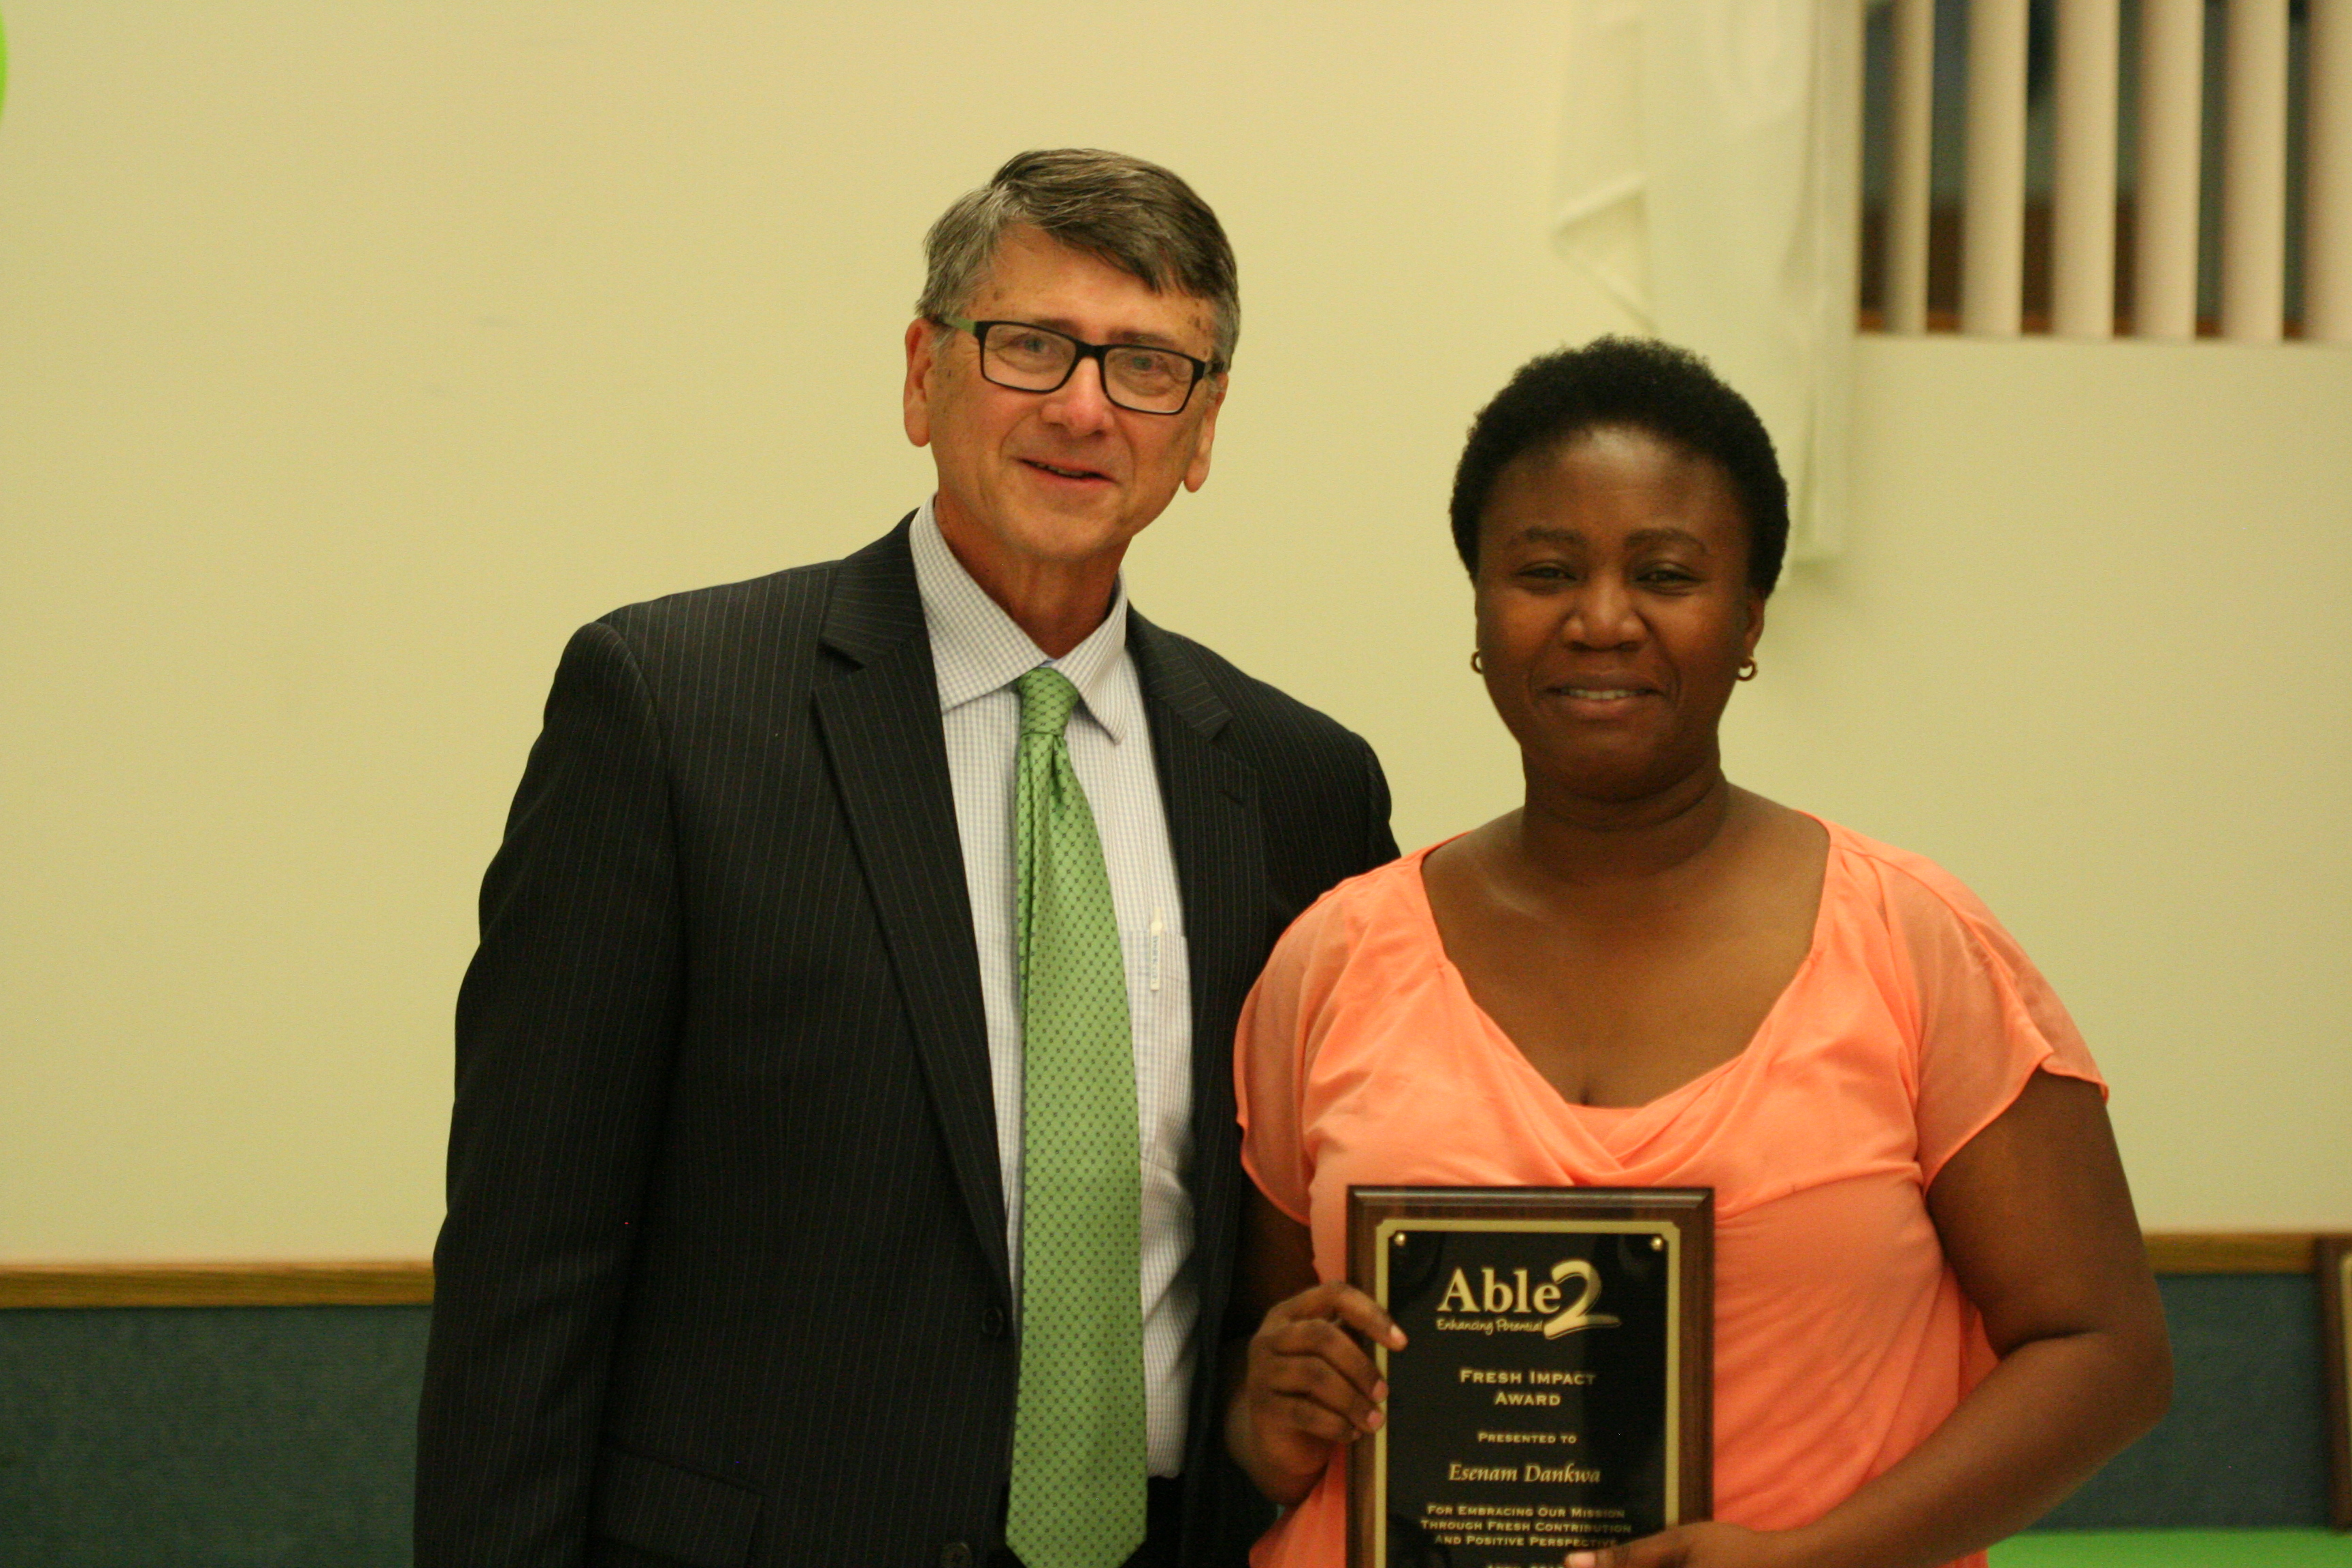 Esenam Dankwa, Fresh Impact Award Recipient